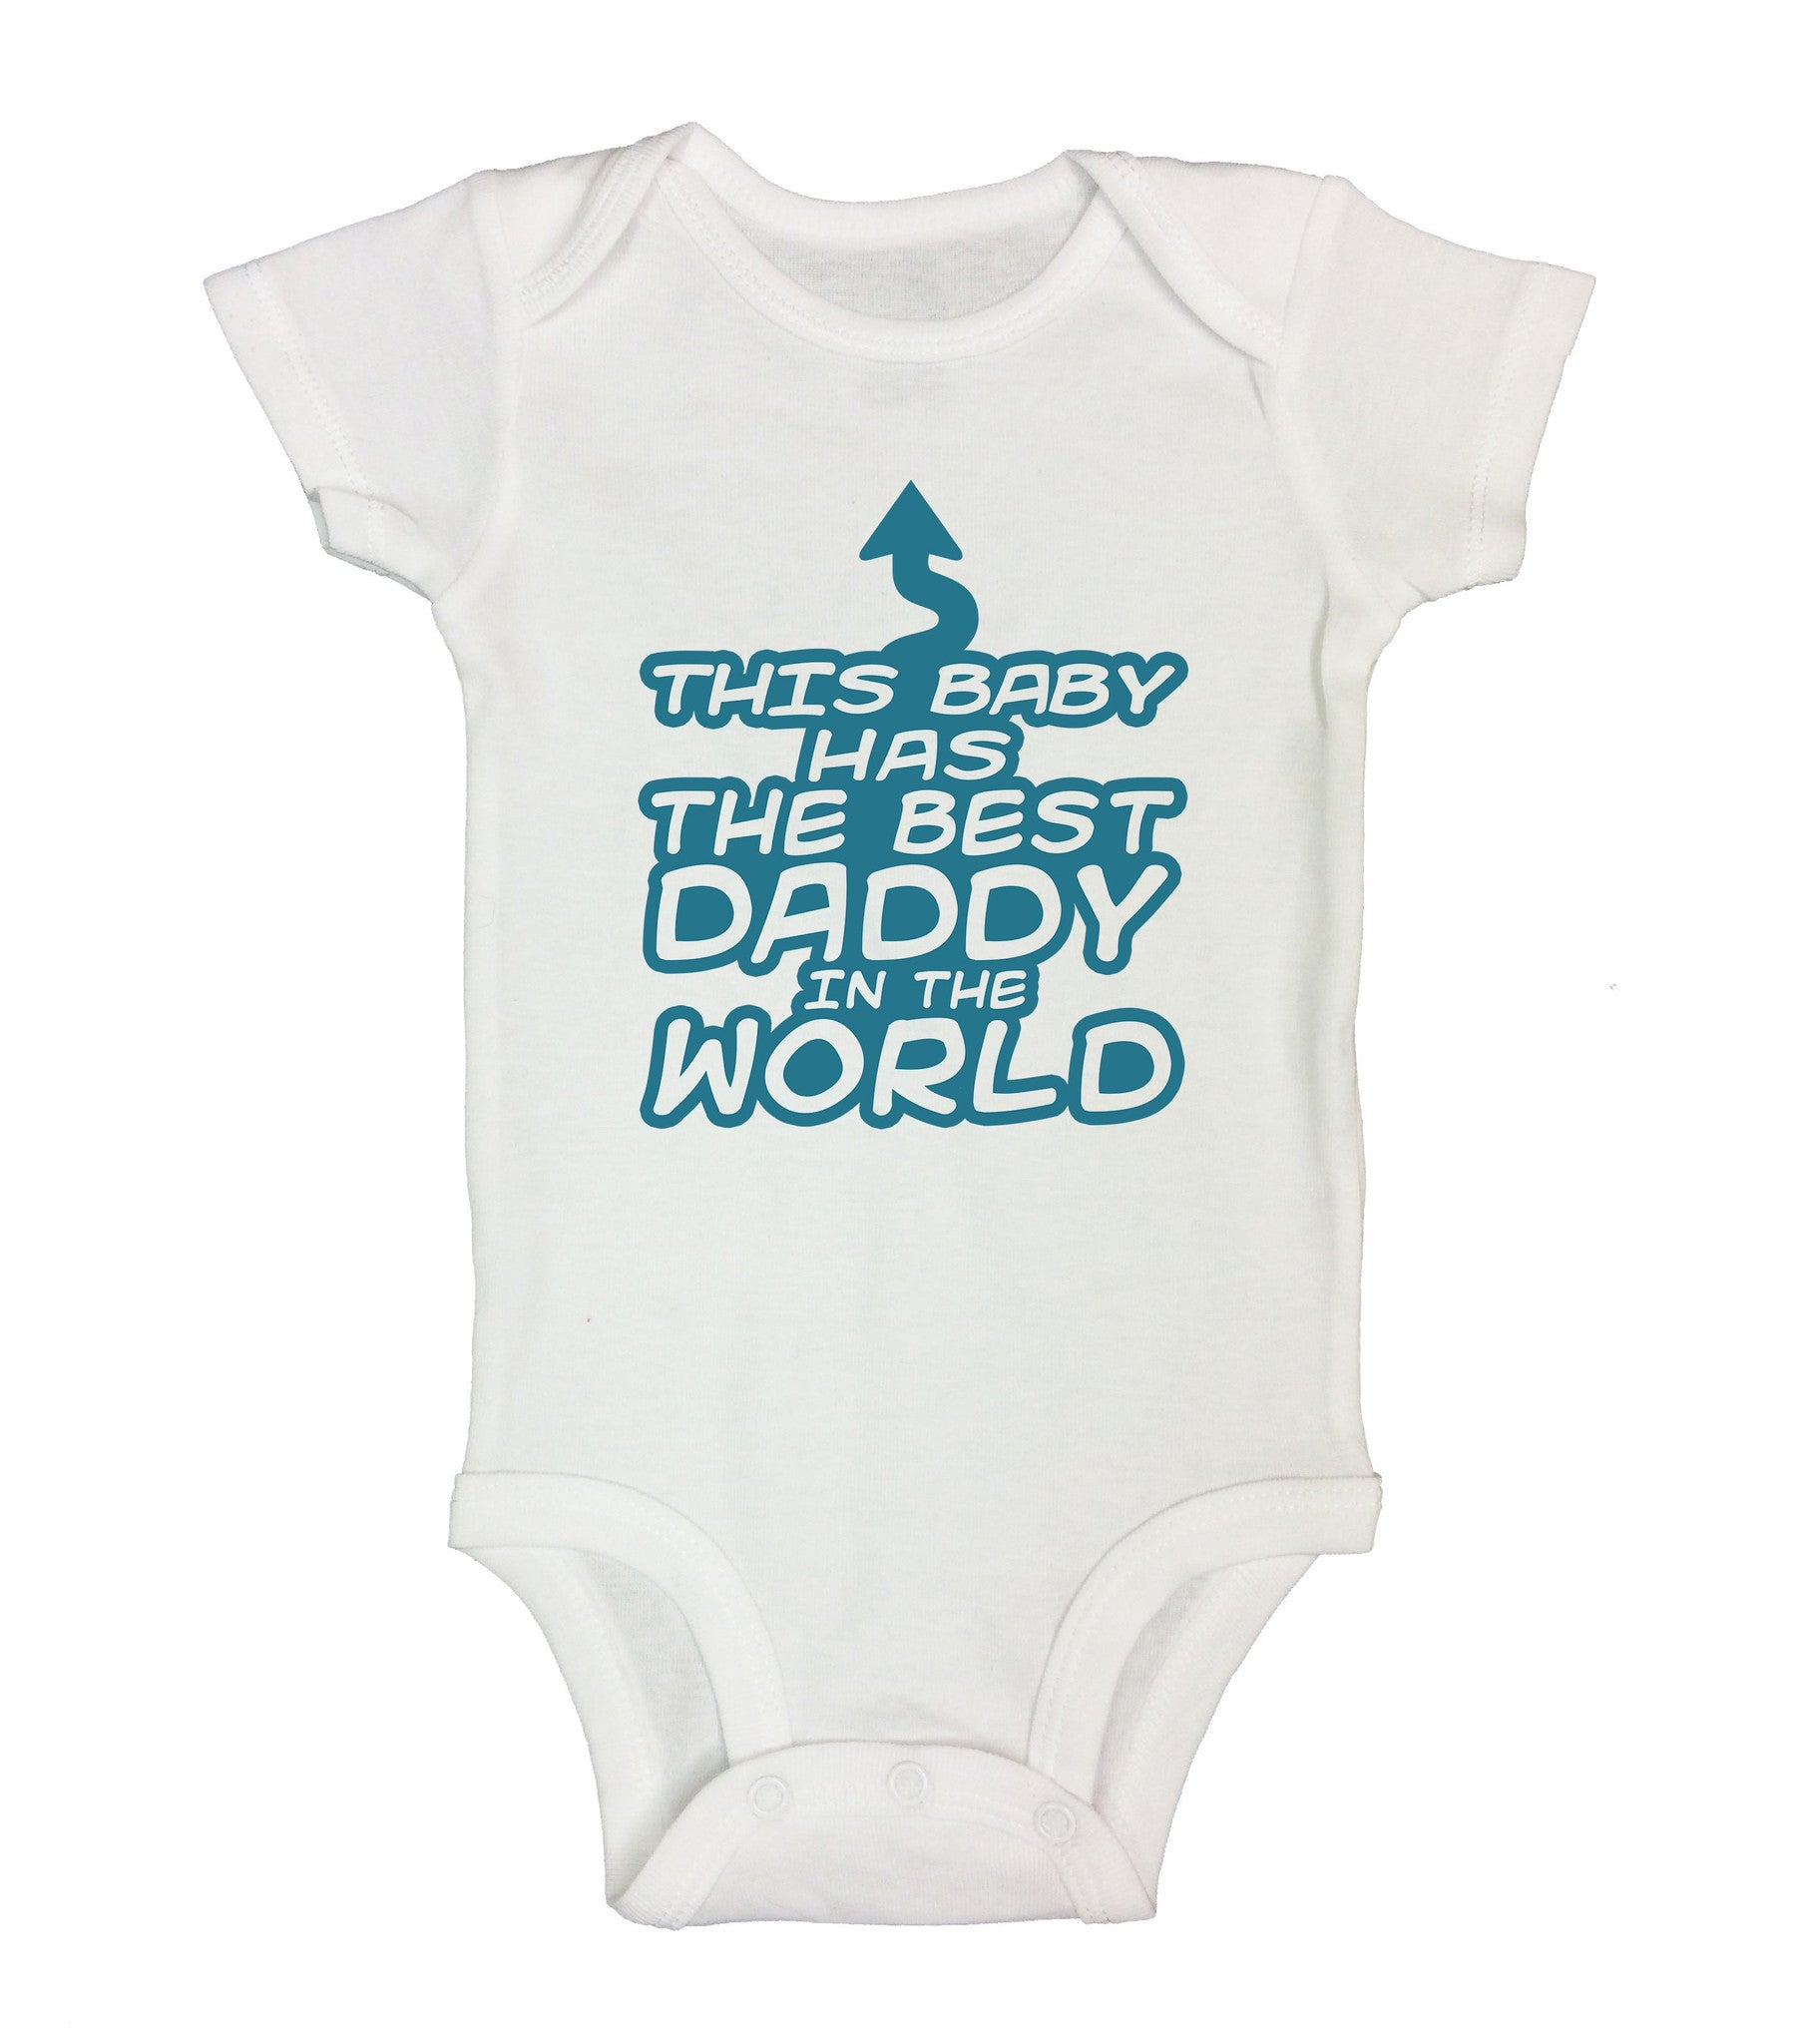 This Baby Has The Best Daddy In The World Funny Kids Onesie - B28 - Funny Shirts Tank Tops Burnouts and Triblends  - 2